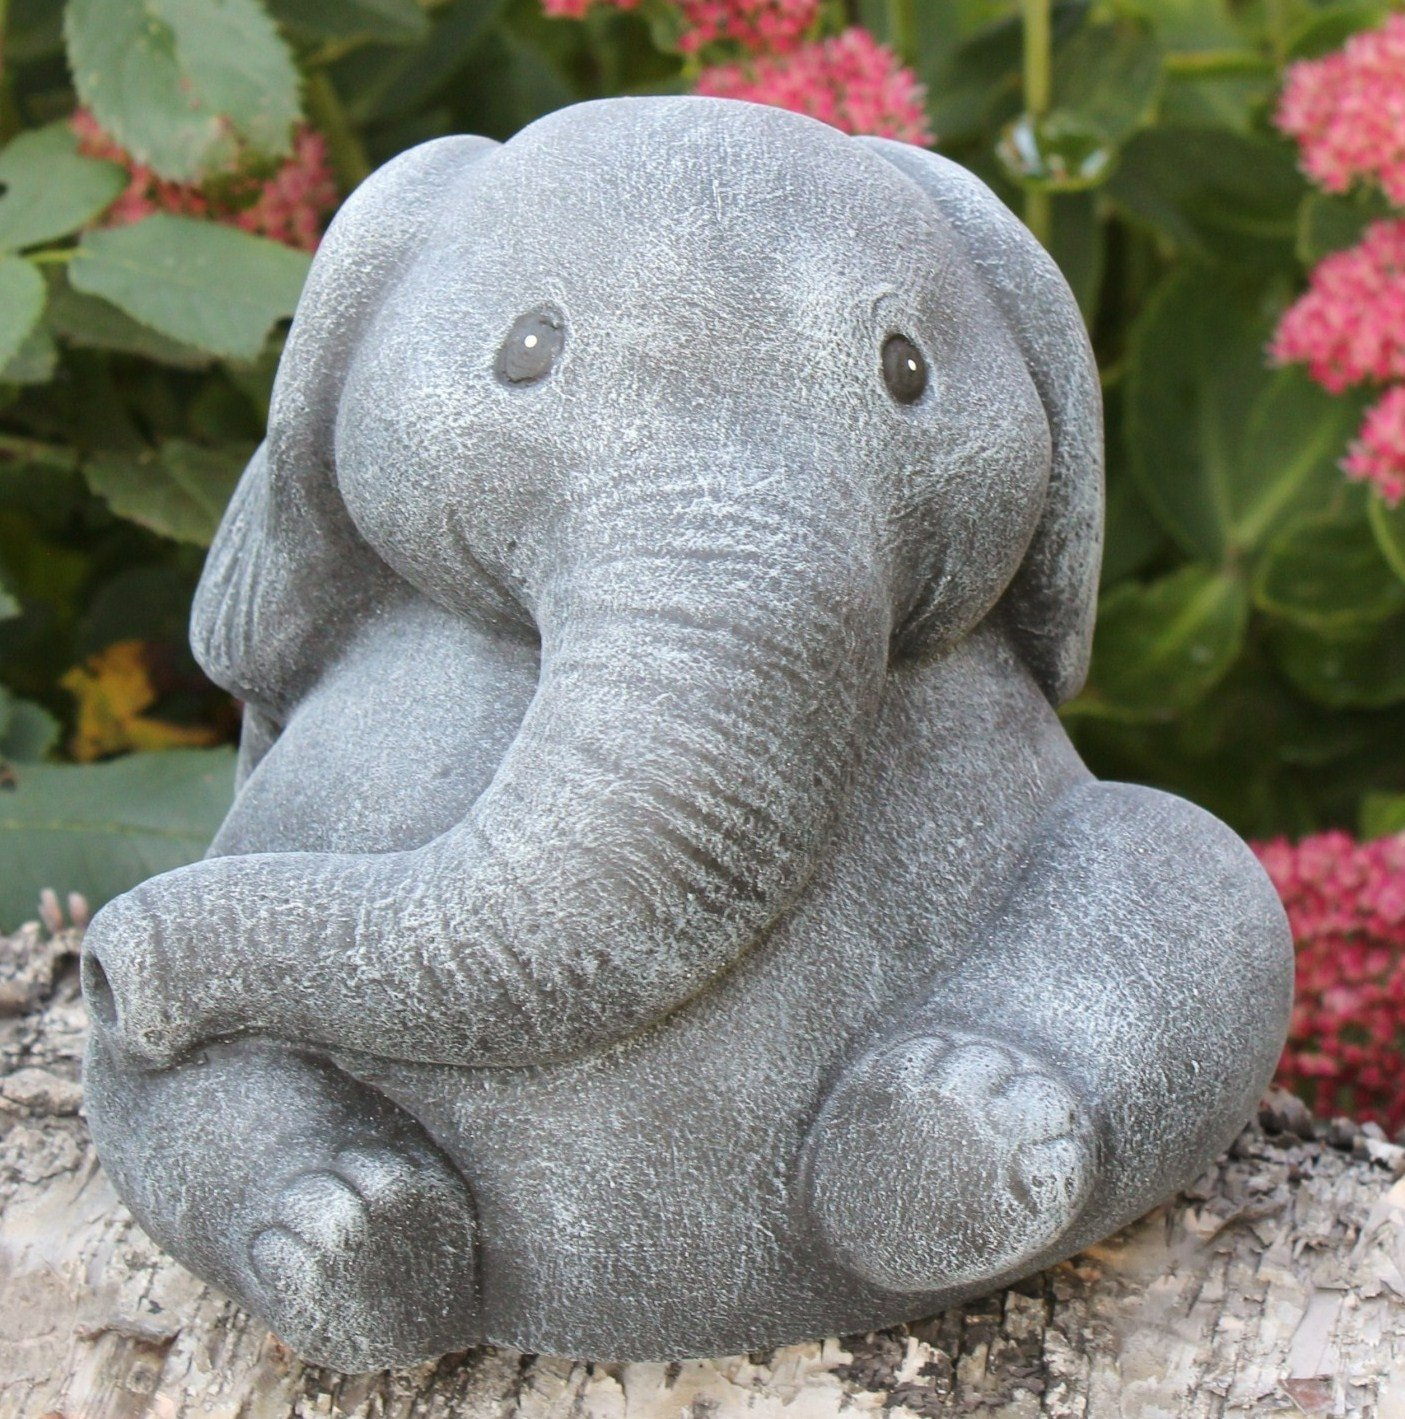 Garden Ornament Elephant, Cast Stone, Slate Gray: Amazon.co.uk: Kitchen U0026  Home